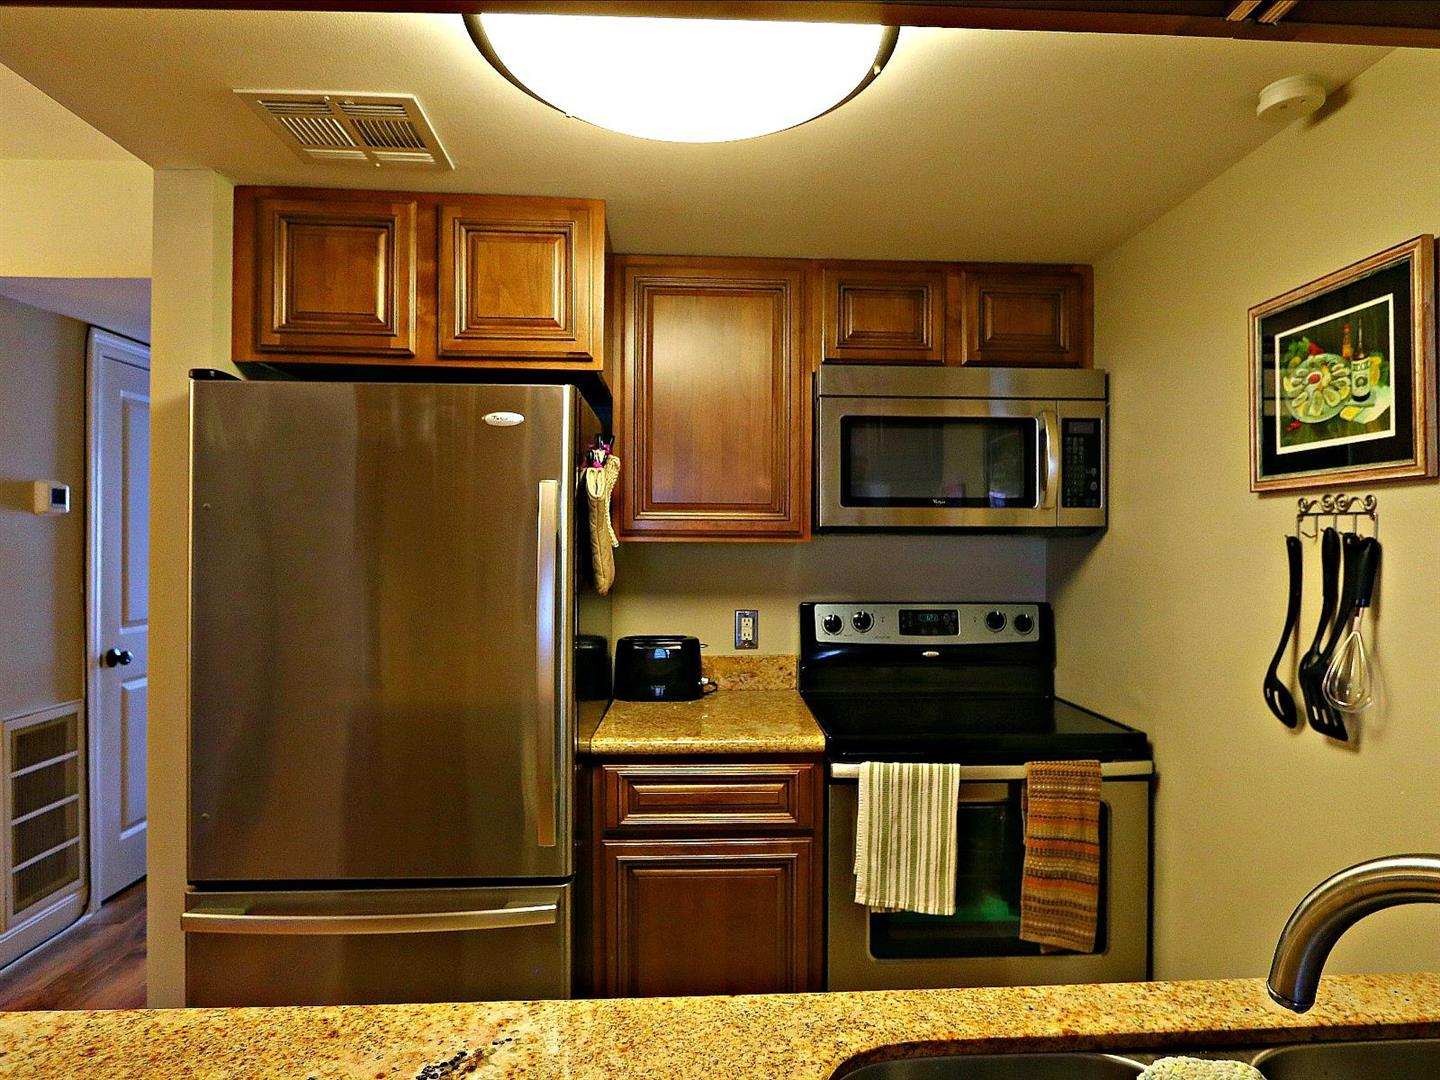 3201St.CharlesAvenue115Kitchen.jpg